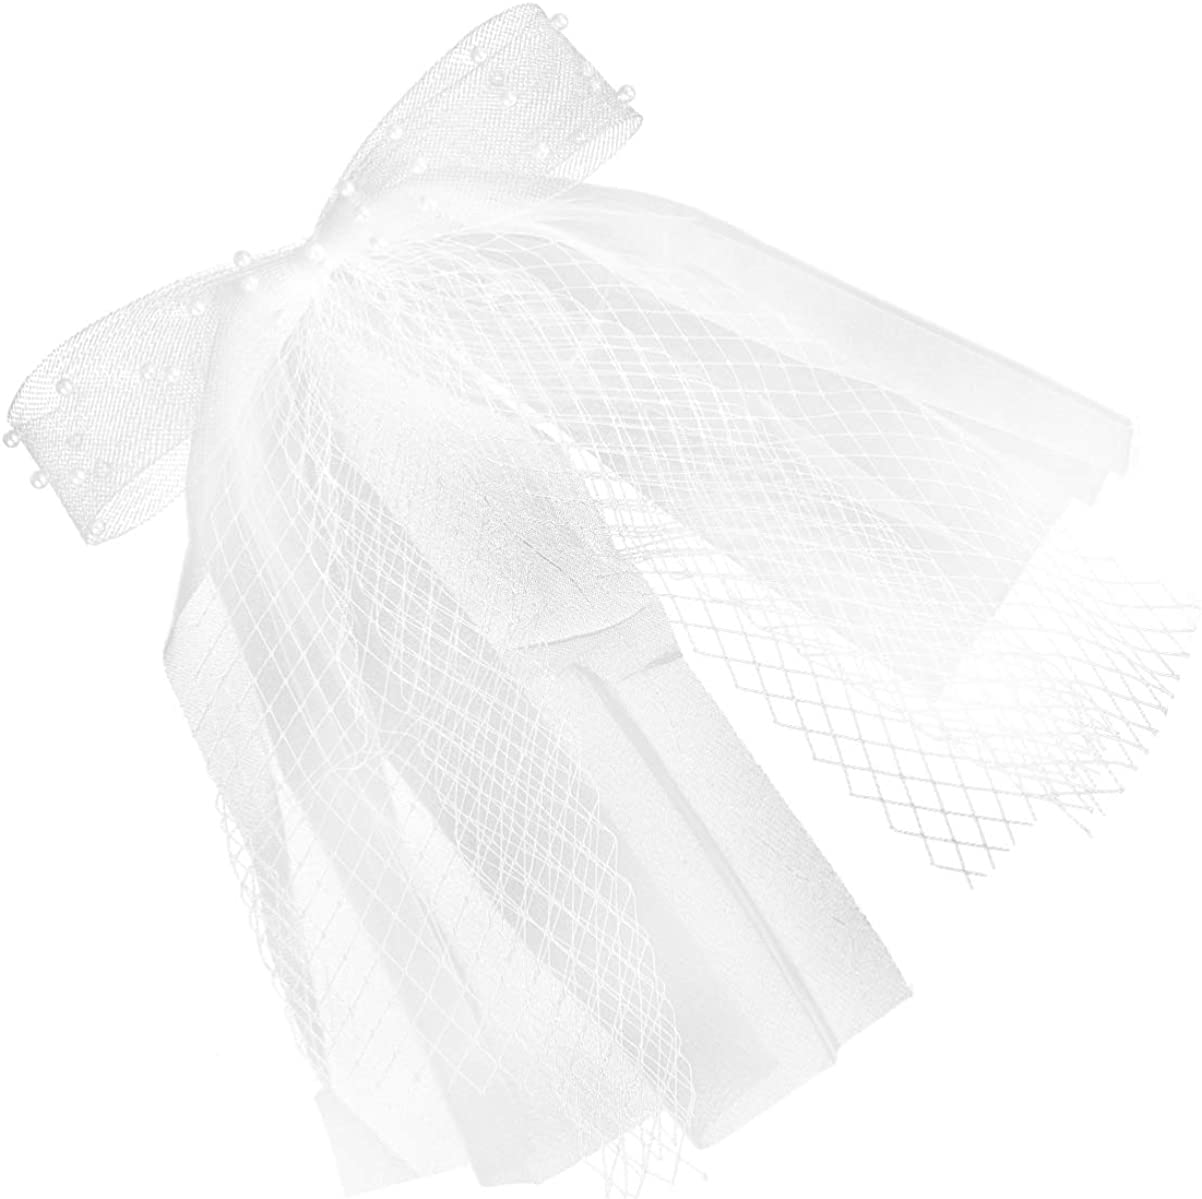 Amosfun Girls First Communion White Veil with Bow Knot Flower Girls Lace with Pearl Bridal Veil Headband for Wedding Party Church